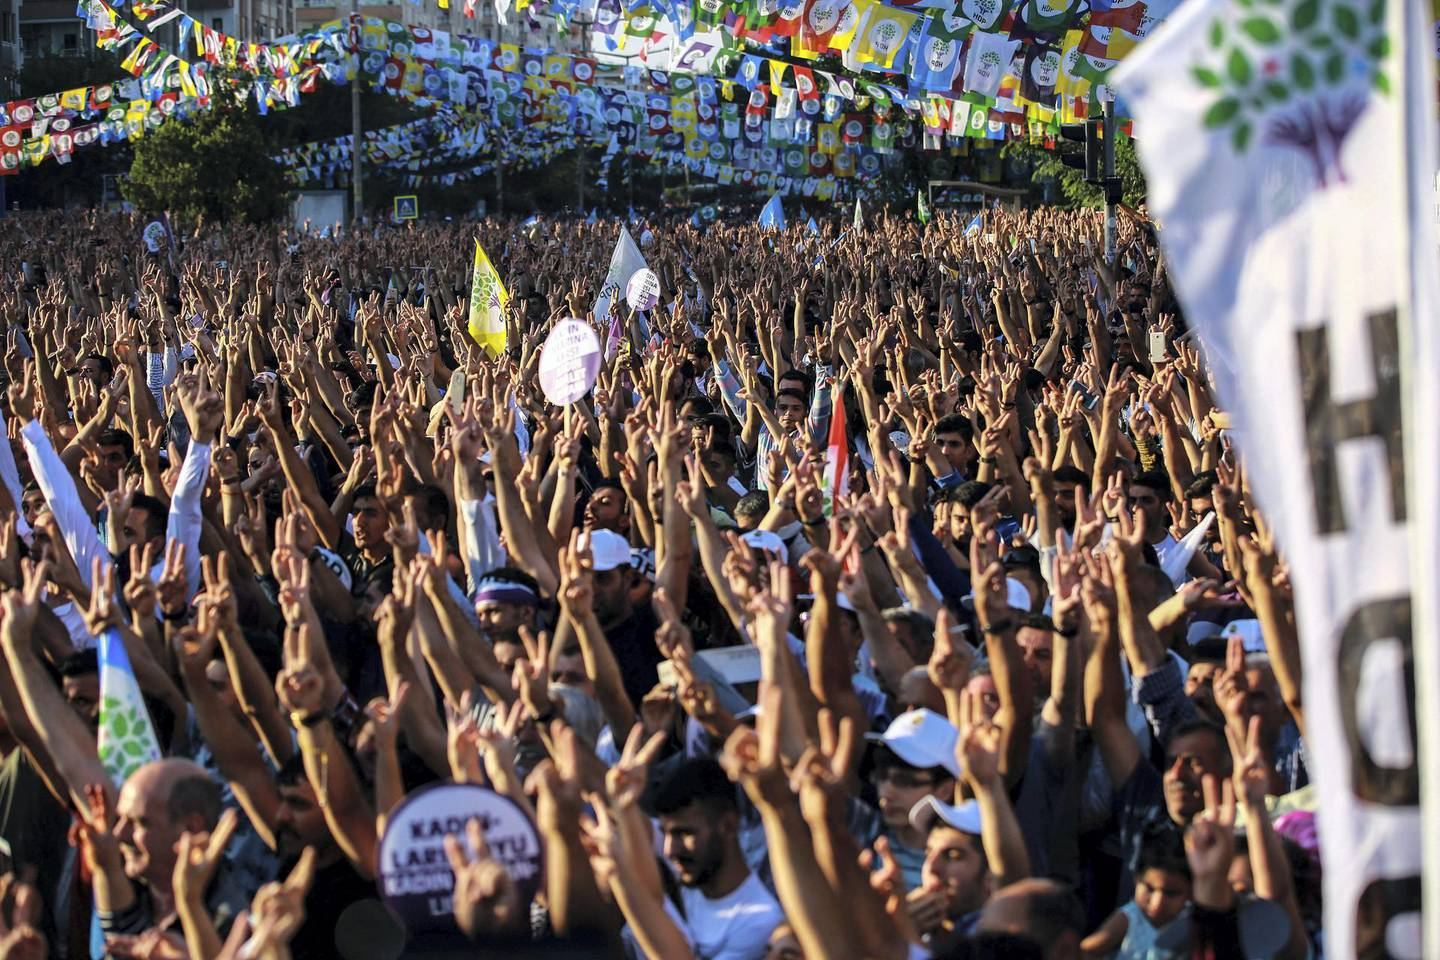 Supporters of imprisoned Selahattin Demirtas, presidential candidate of the pro-Kurdish People's Democratic Party (HDP), react during an election campaign rally in Diyarbakir on June 20, 2018. - The Turkish President announced on April 18, 2018 that Turkey will hold snap elections on June 24, 2018. (Photo by - / AFP)